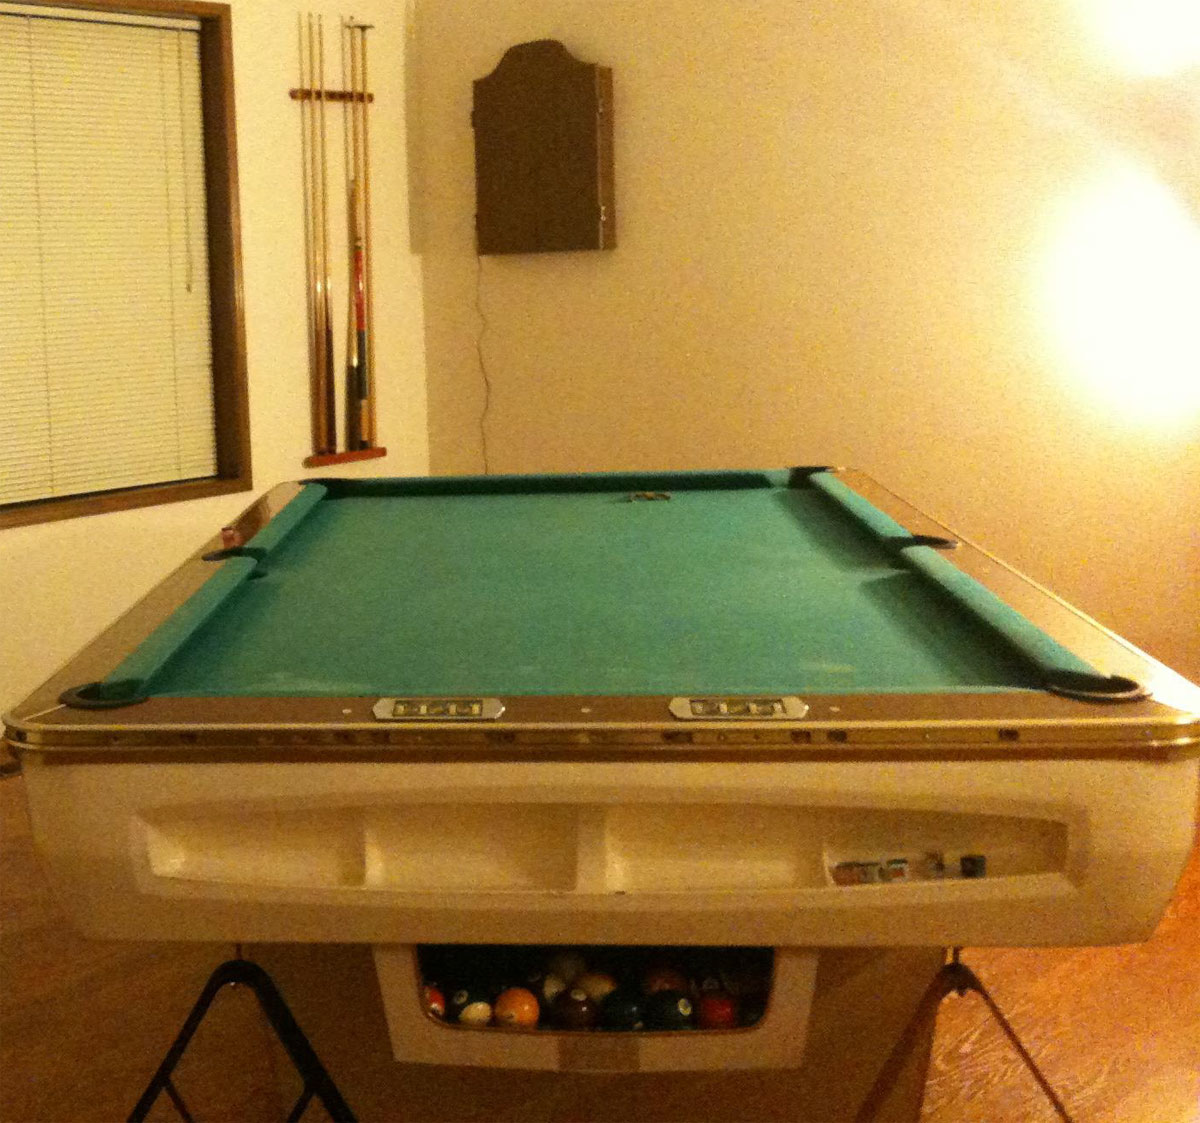 Pool Table Cloth Replacement Kit: All-Tech Industries Inc. Sixties Pool Table